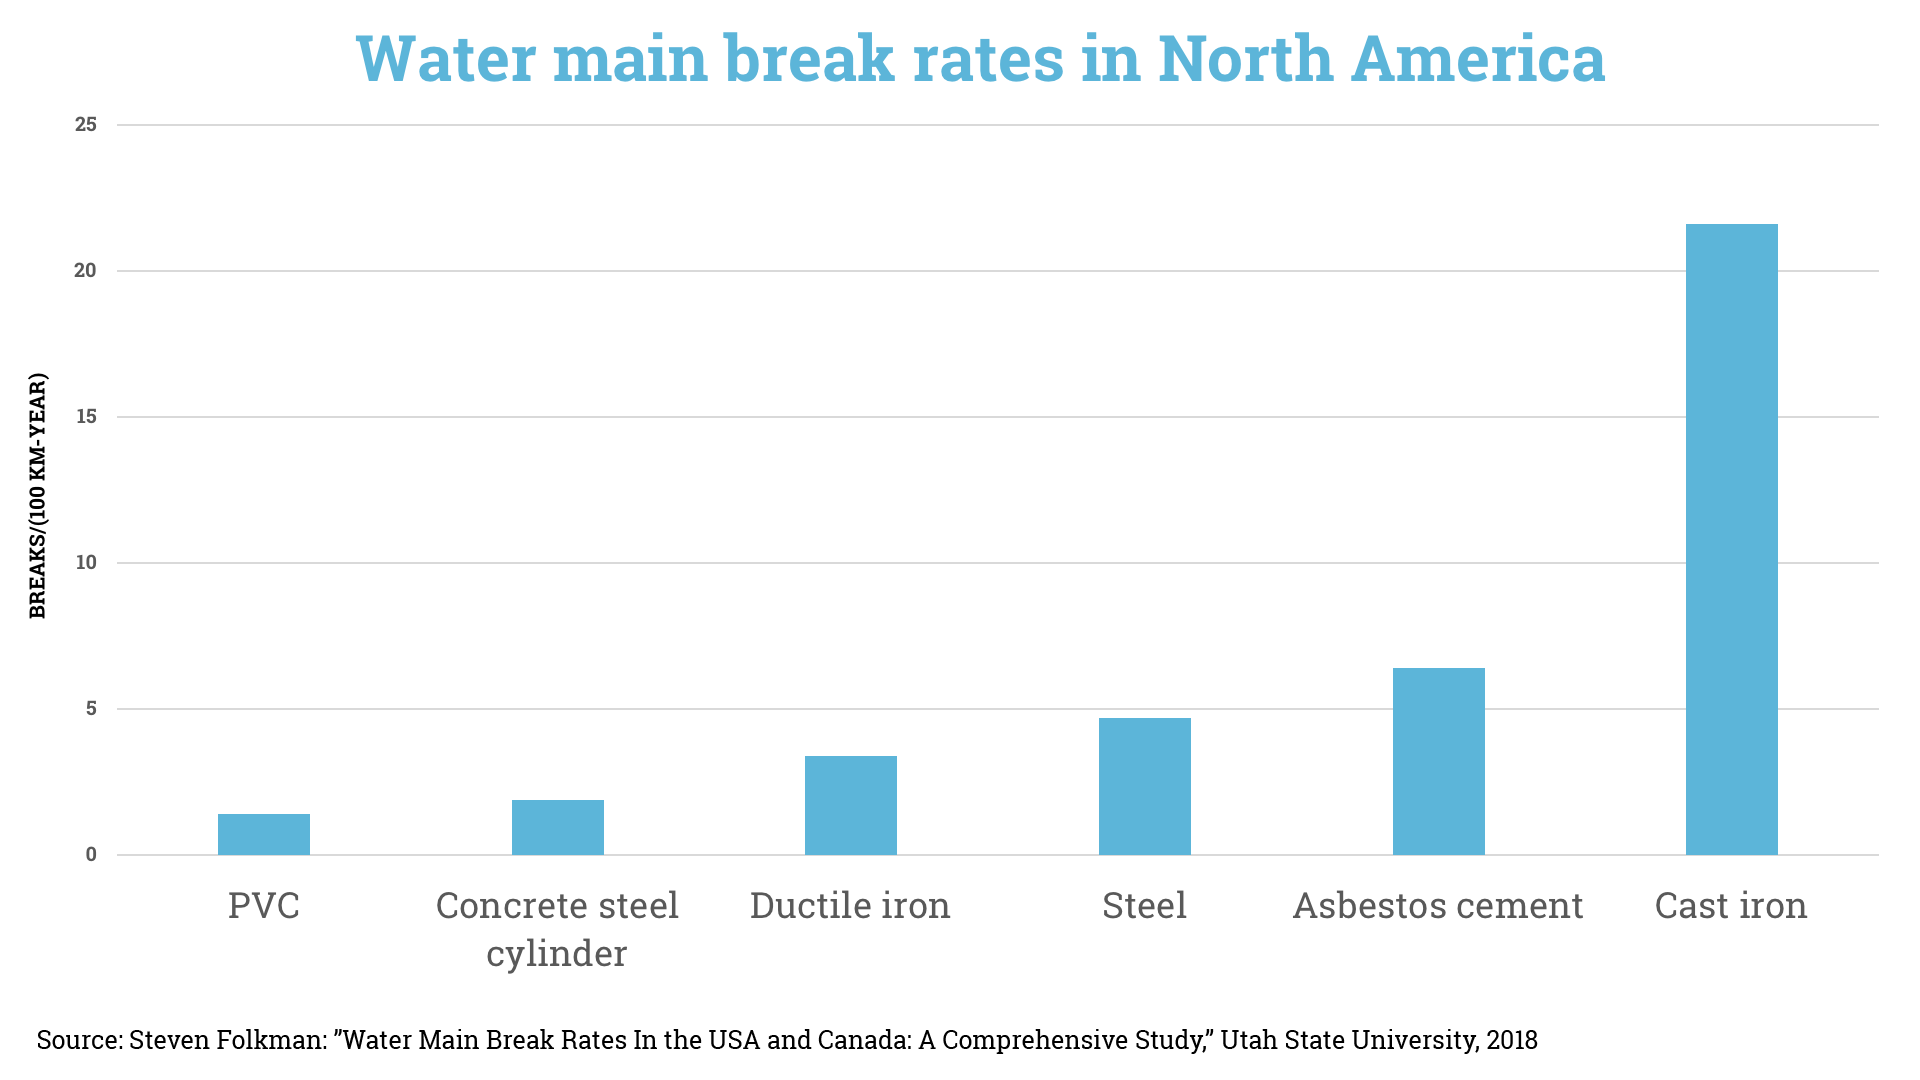 pvc water main break rates